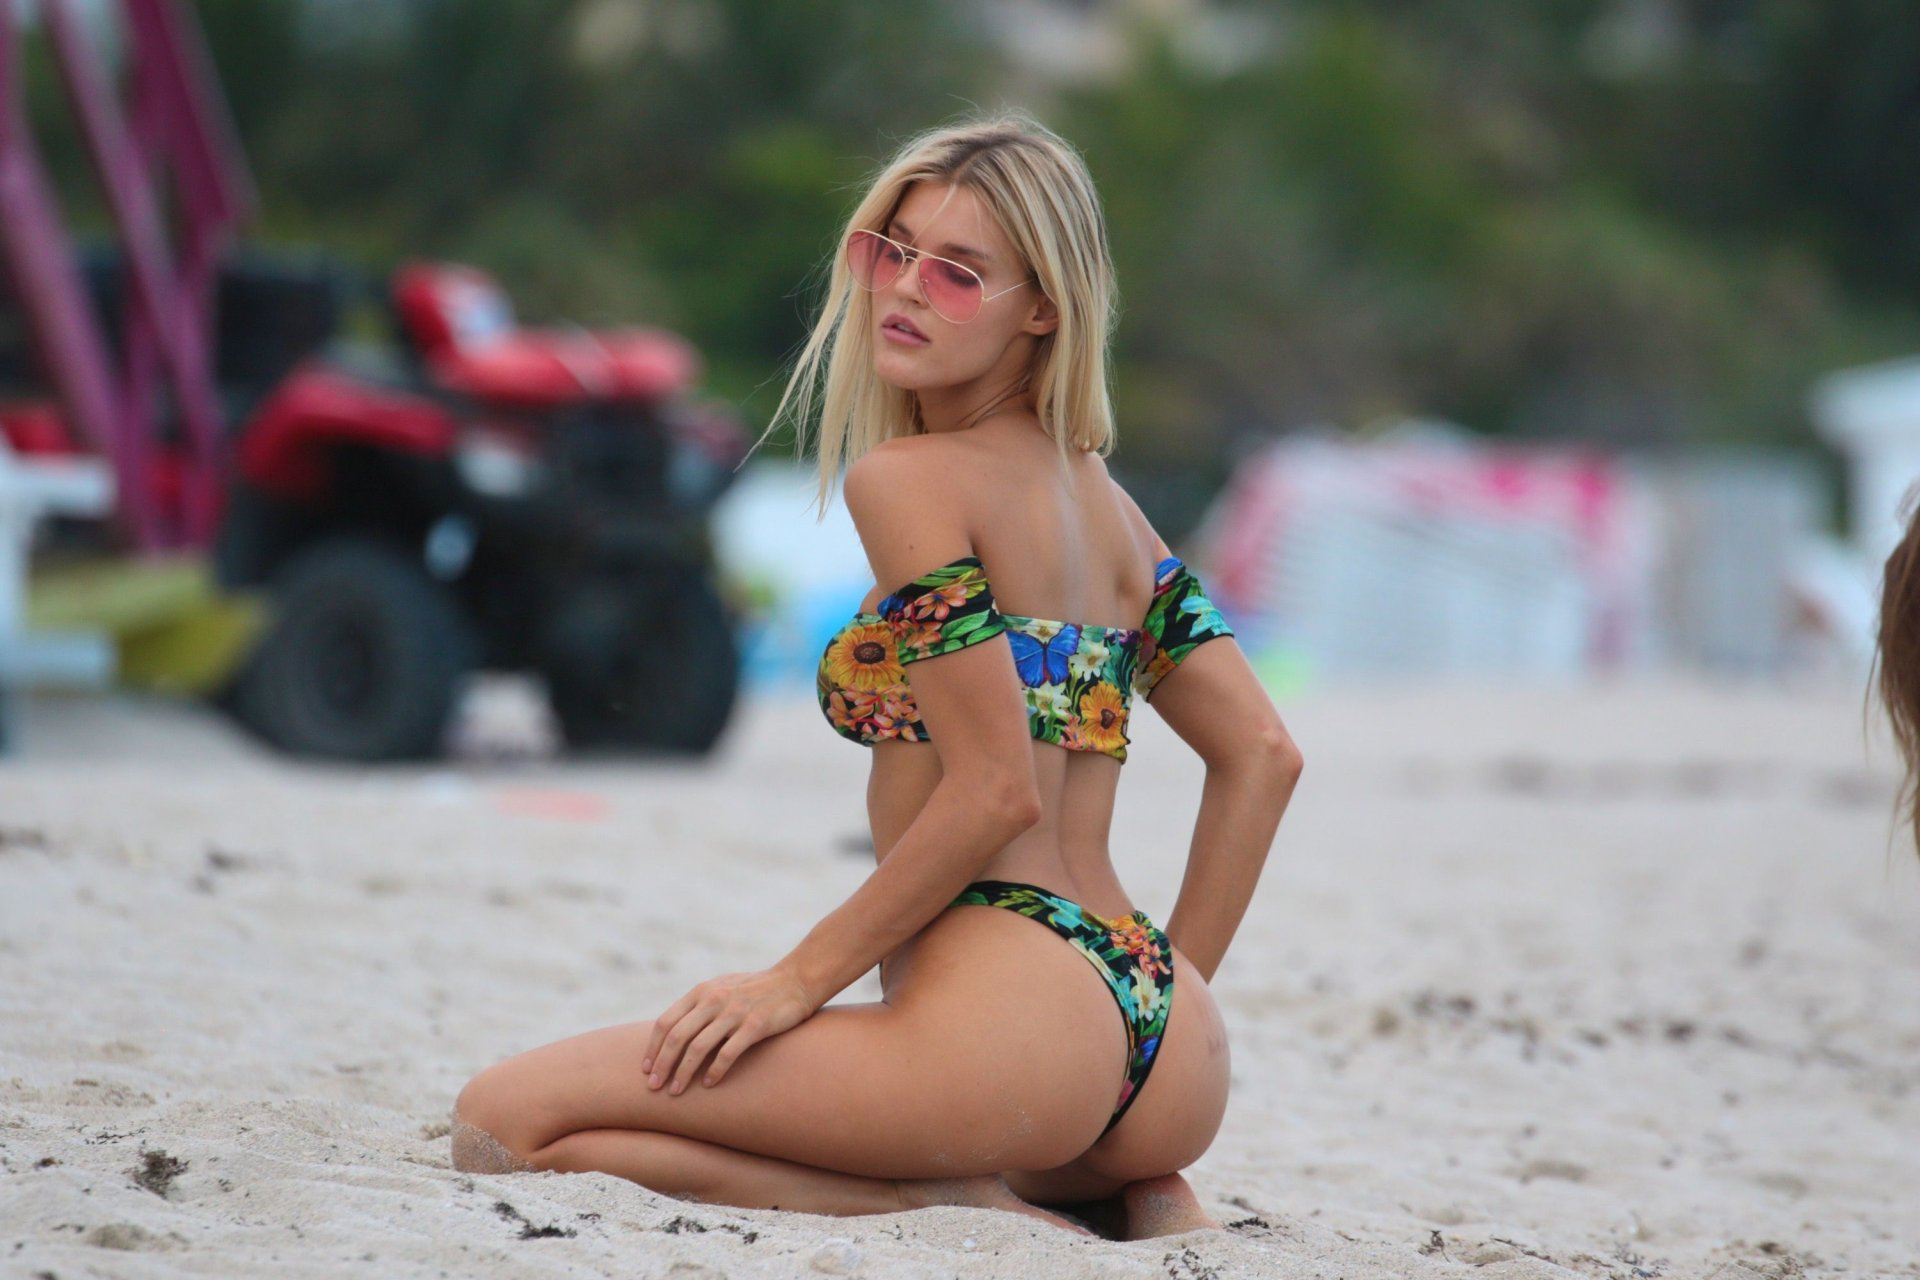 ICloud Brianna Olenslager naked (35 foto and video), Ass, Cleavage, Twitter, in bikini 2017